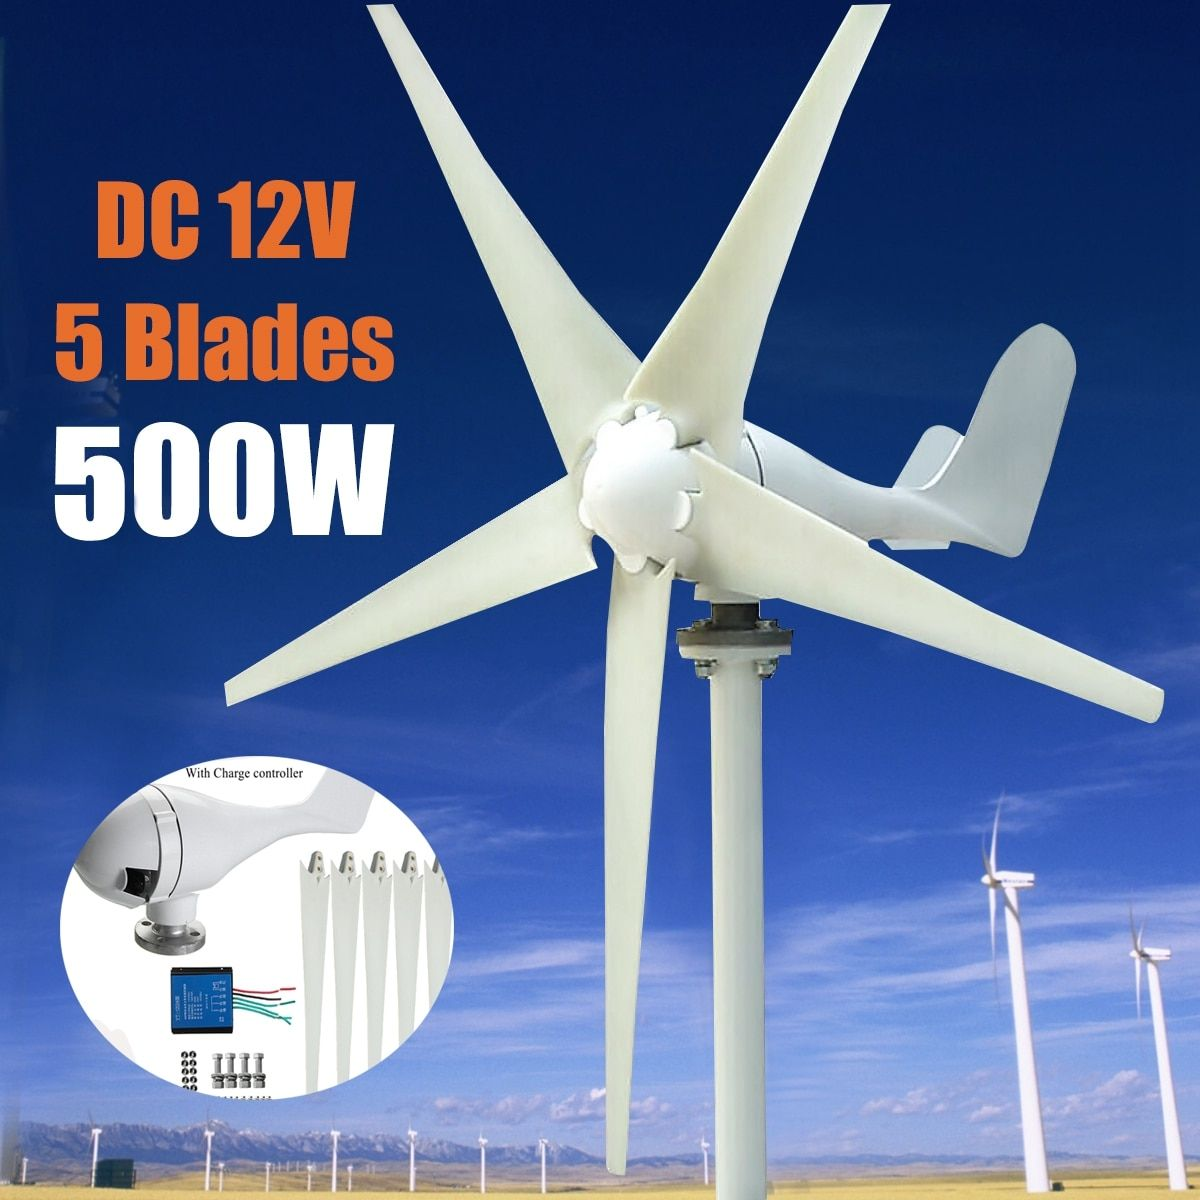 Max 600W Wind Turbine Generator DC 12V/24V 5 Blade Power Supply with Charge Controller for Home Hybrid streetlight use